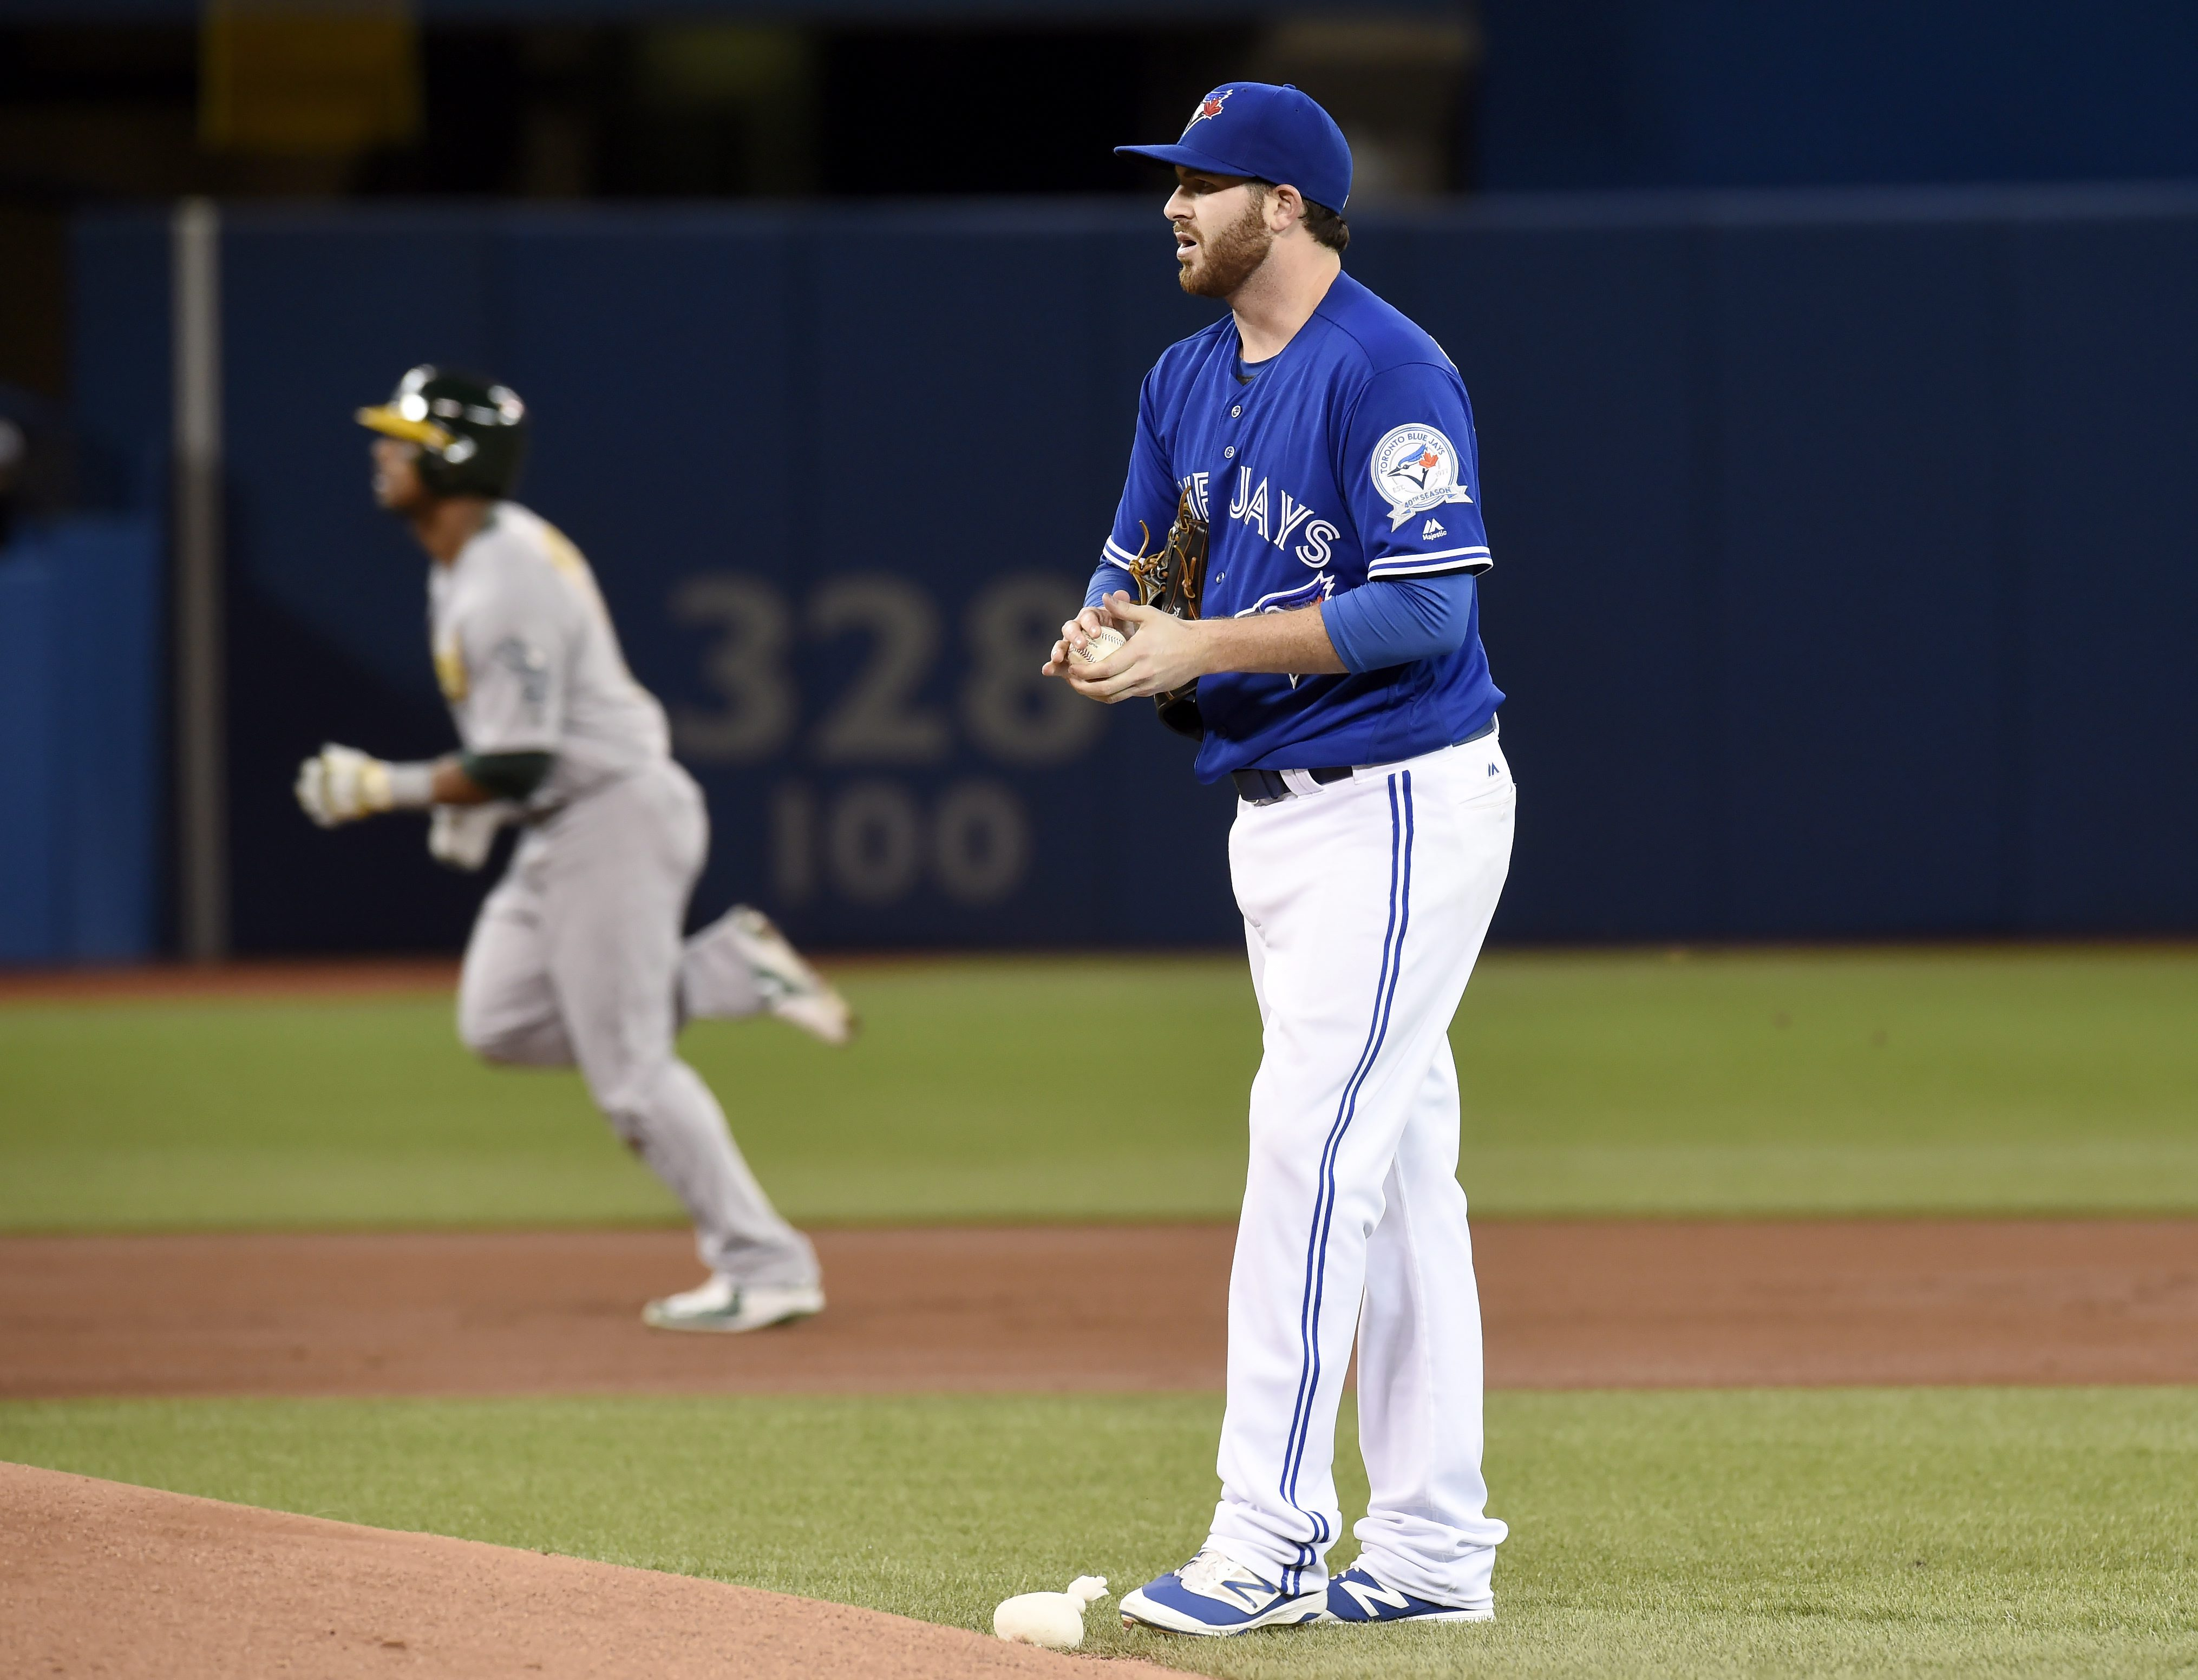 Toronto Blue Jays' Drew Hutchison, foreground, steps back as Oakland Athletics' Khris Davis runs the bases after hitting a home run during the second inning of a baseball game in Toronto, Sunday, April 24, 2016. (Frank Gunn/The Canadian Press via AP) MAND